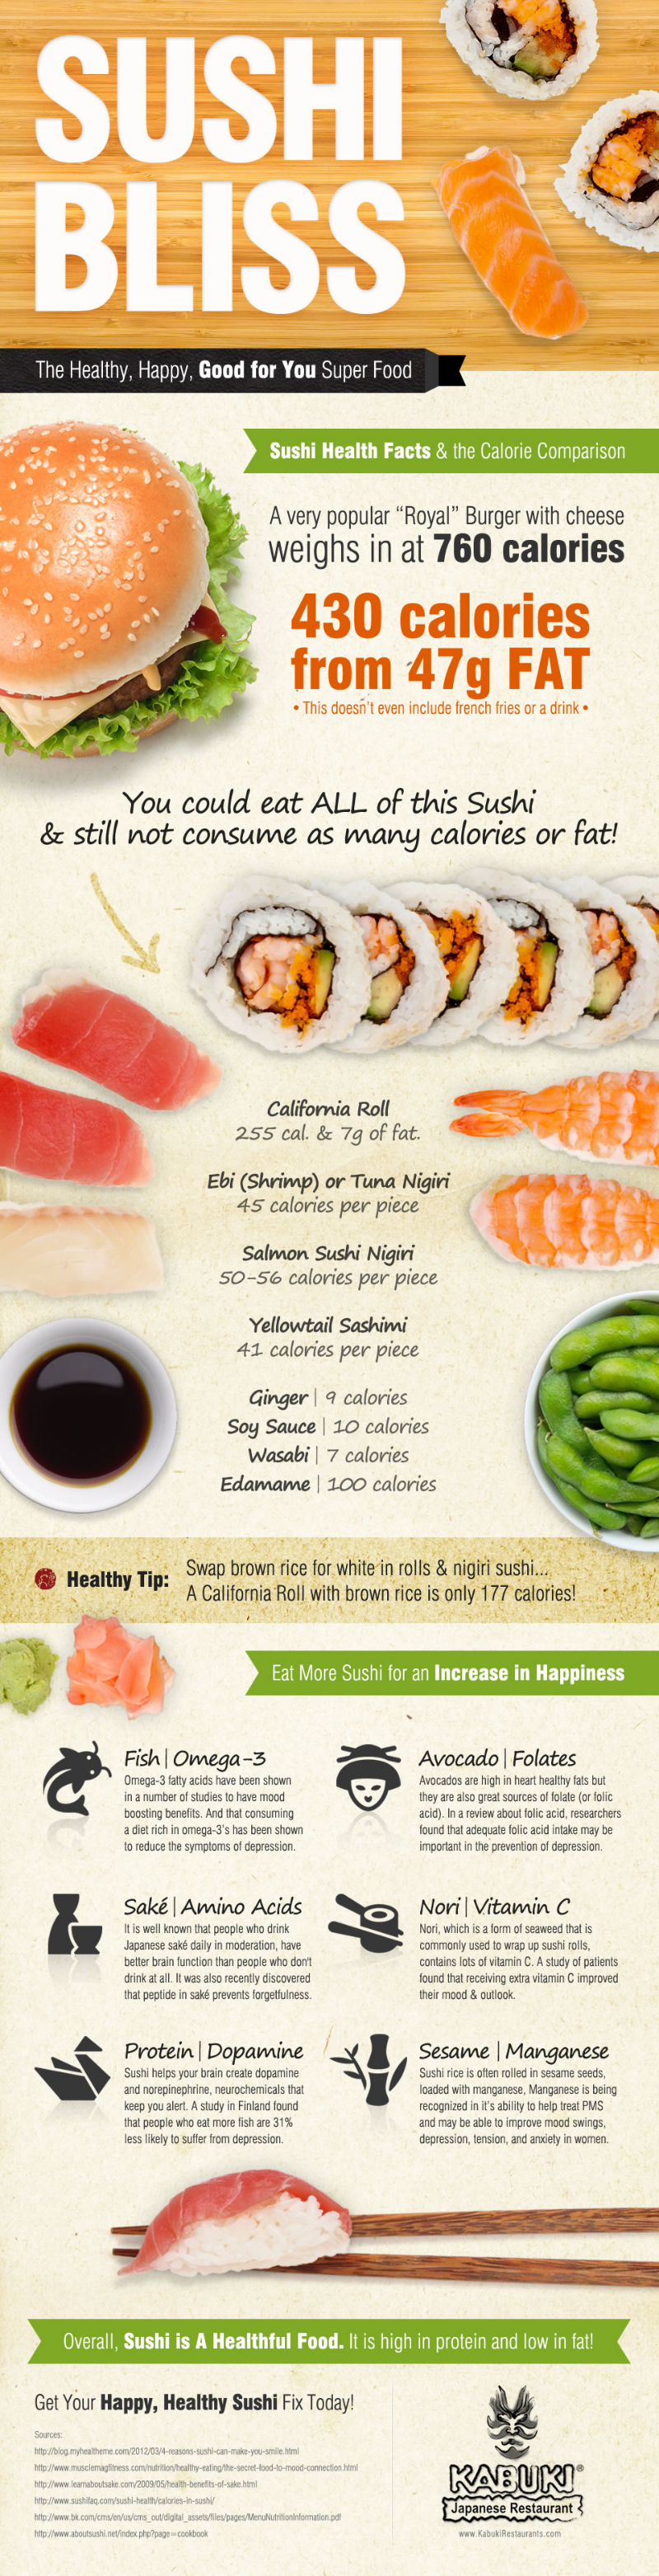 Benefits-of-Sushi